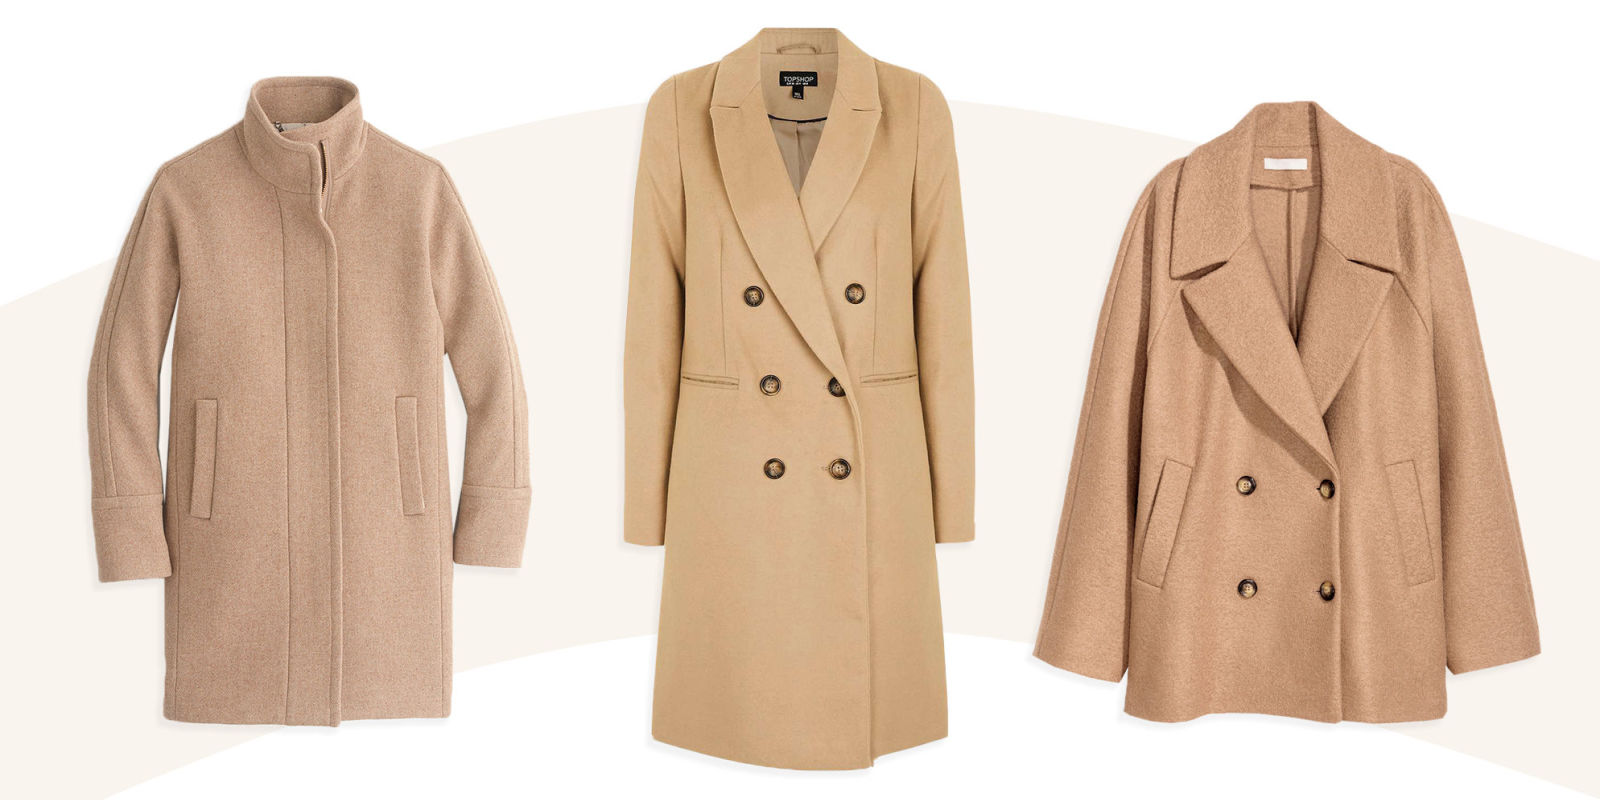 8 Best Camel Coats for Winter 2017 - Womens Double